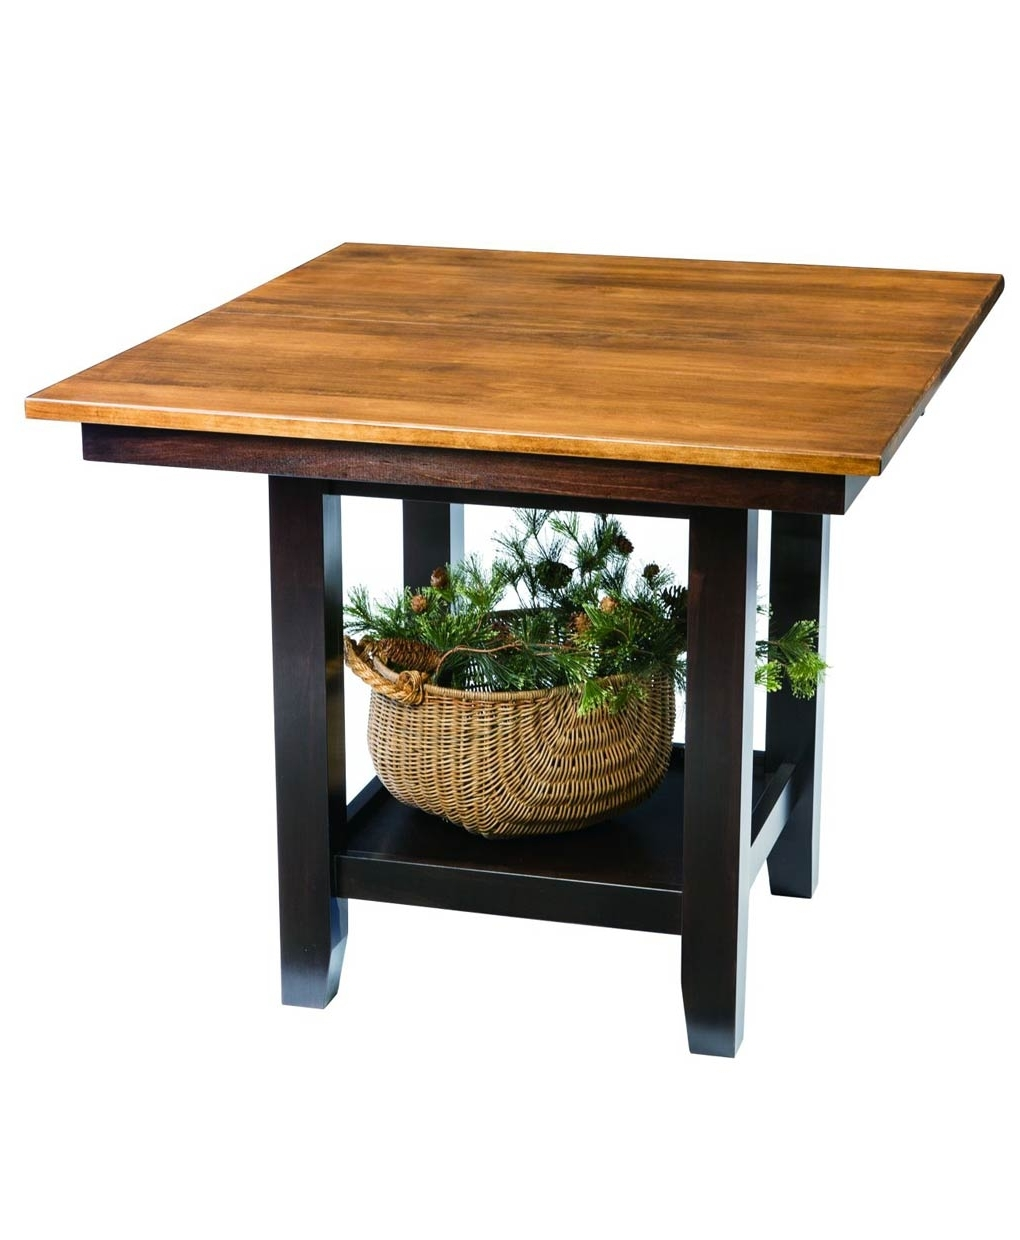 Well Liked London Dining Table – Amish Direct Furniture Throughout Dining Tables London (View 24 of 25)